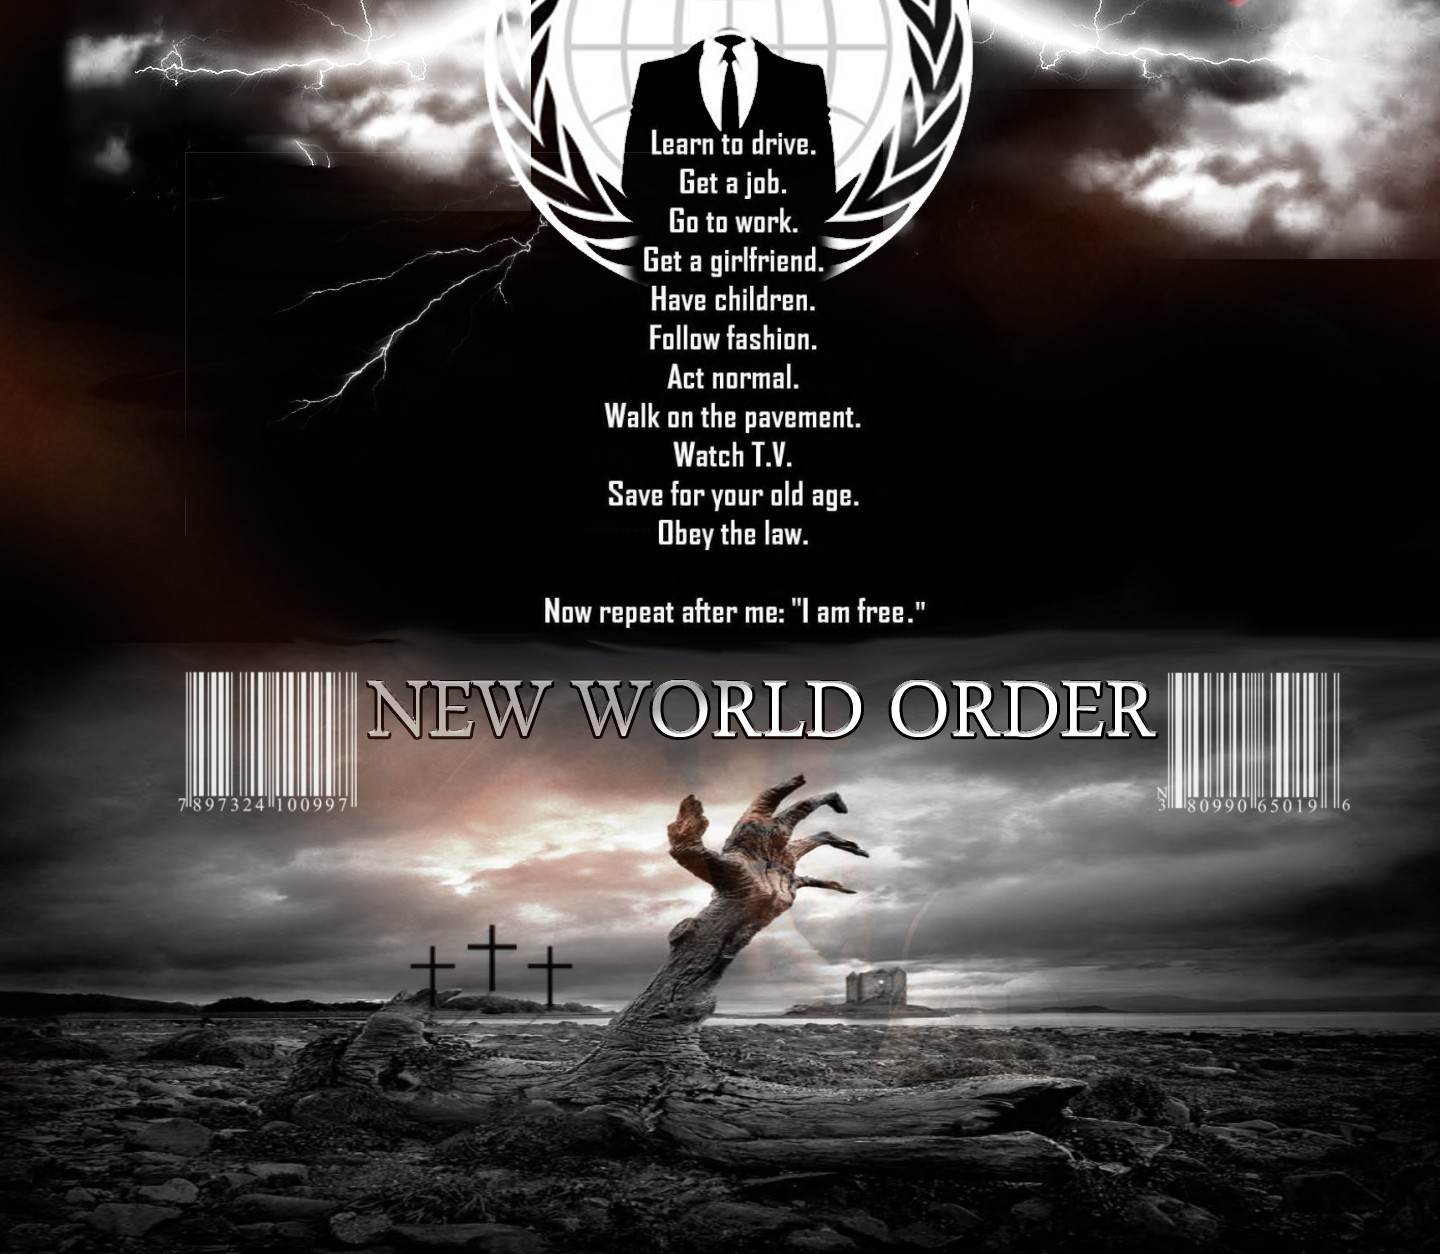 Illuminati nwo New World HD Wallpaper